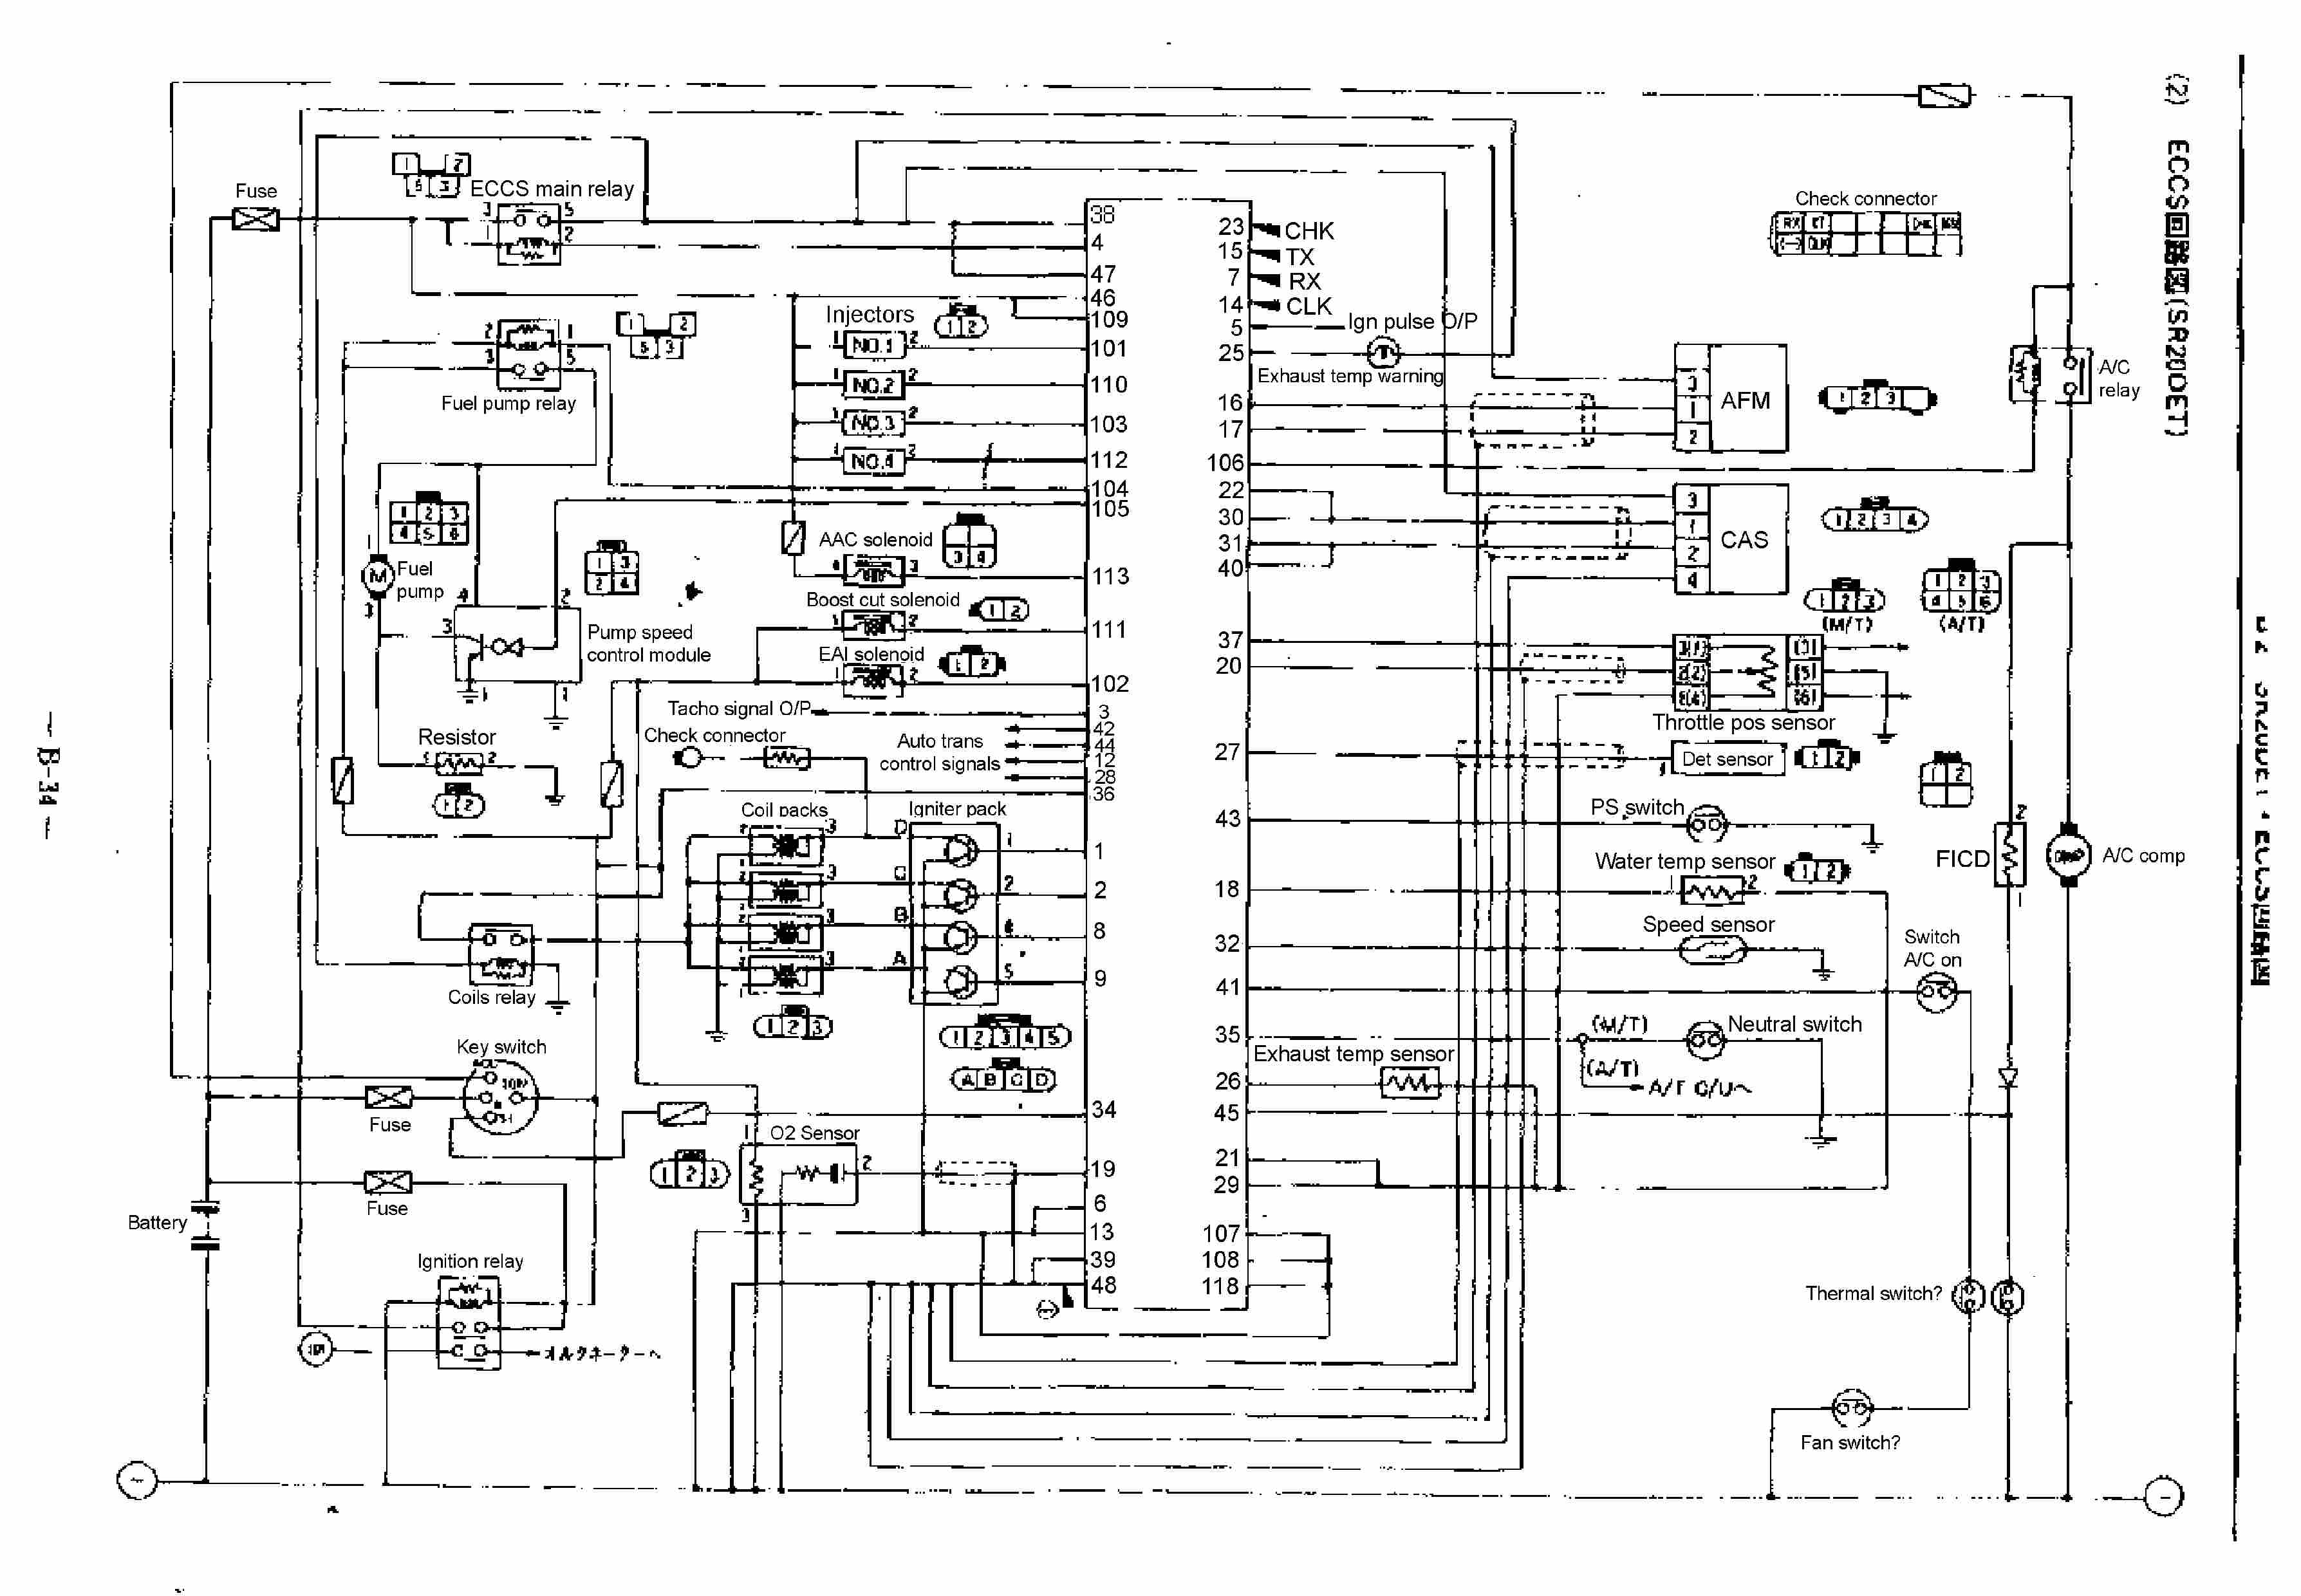 Nissan Ud Wiring Diagram from www.automotive-manuals.net